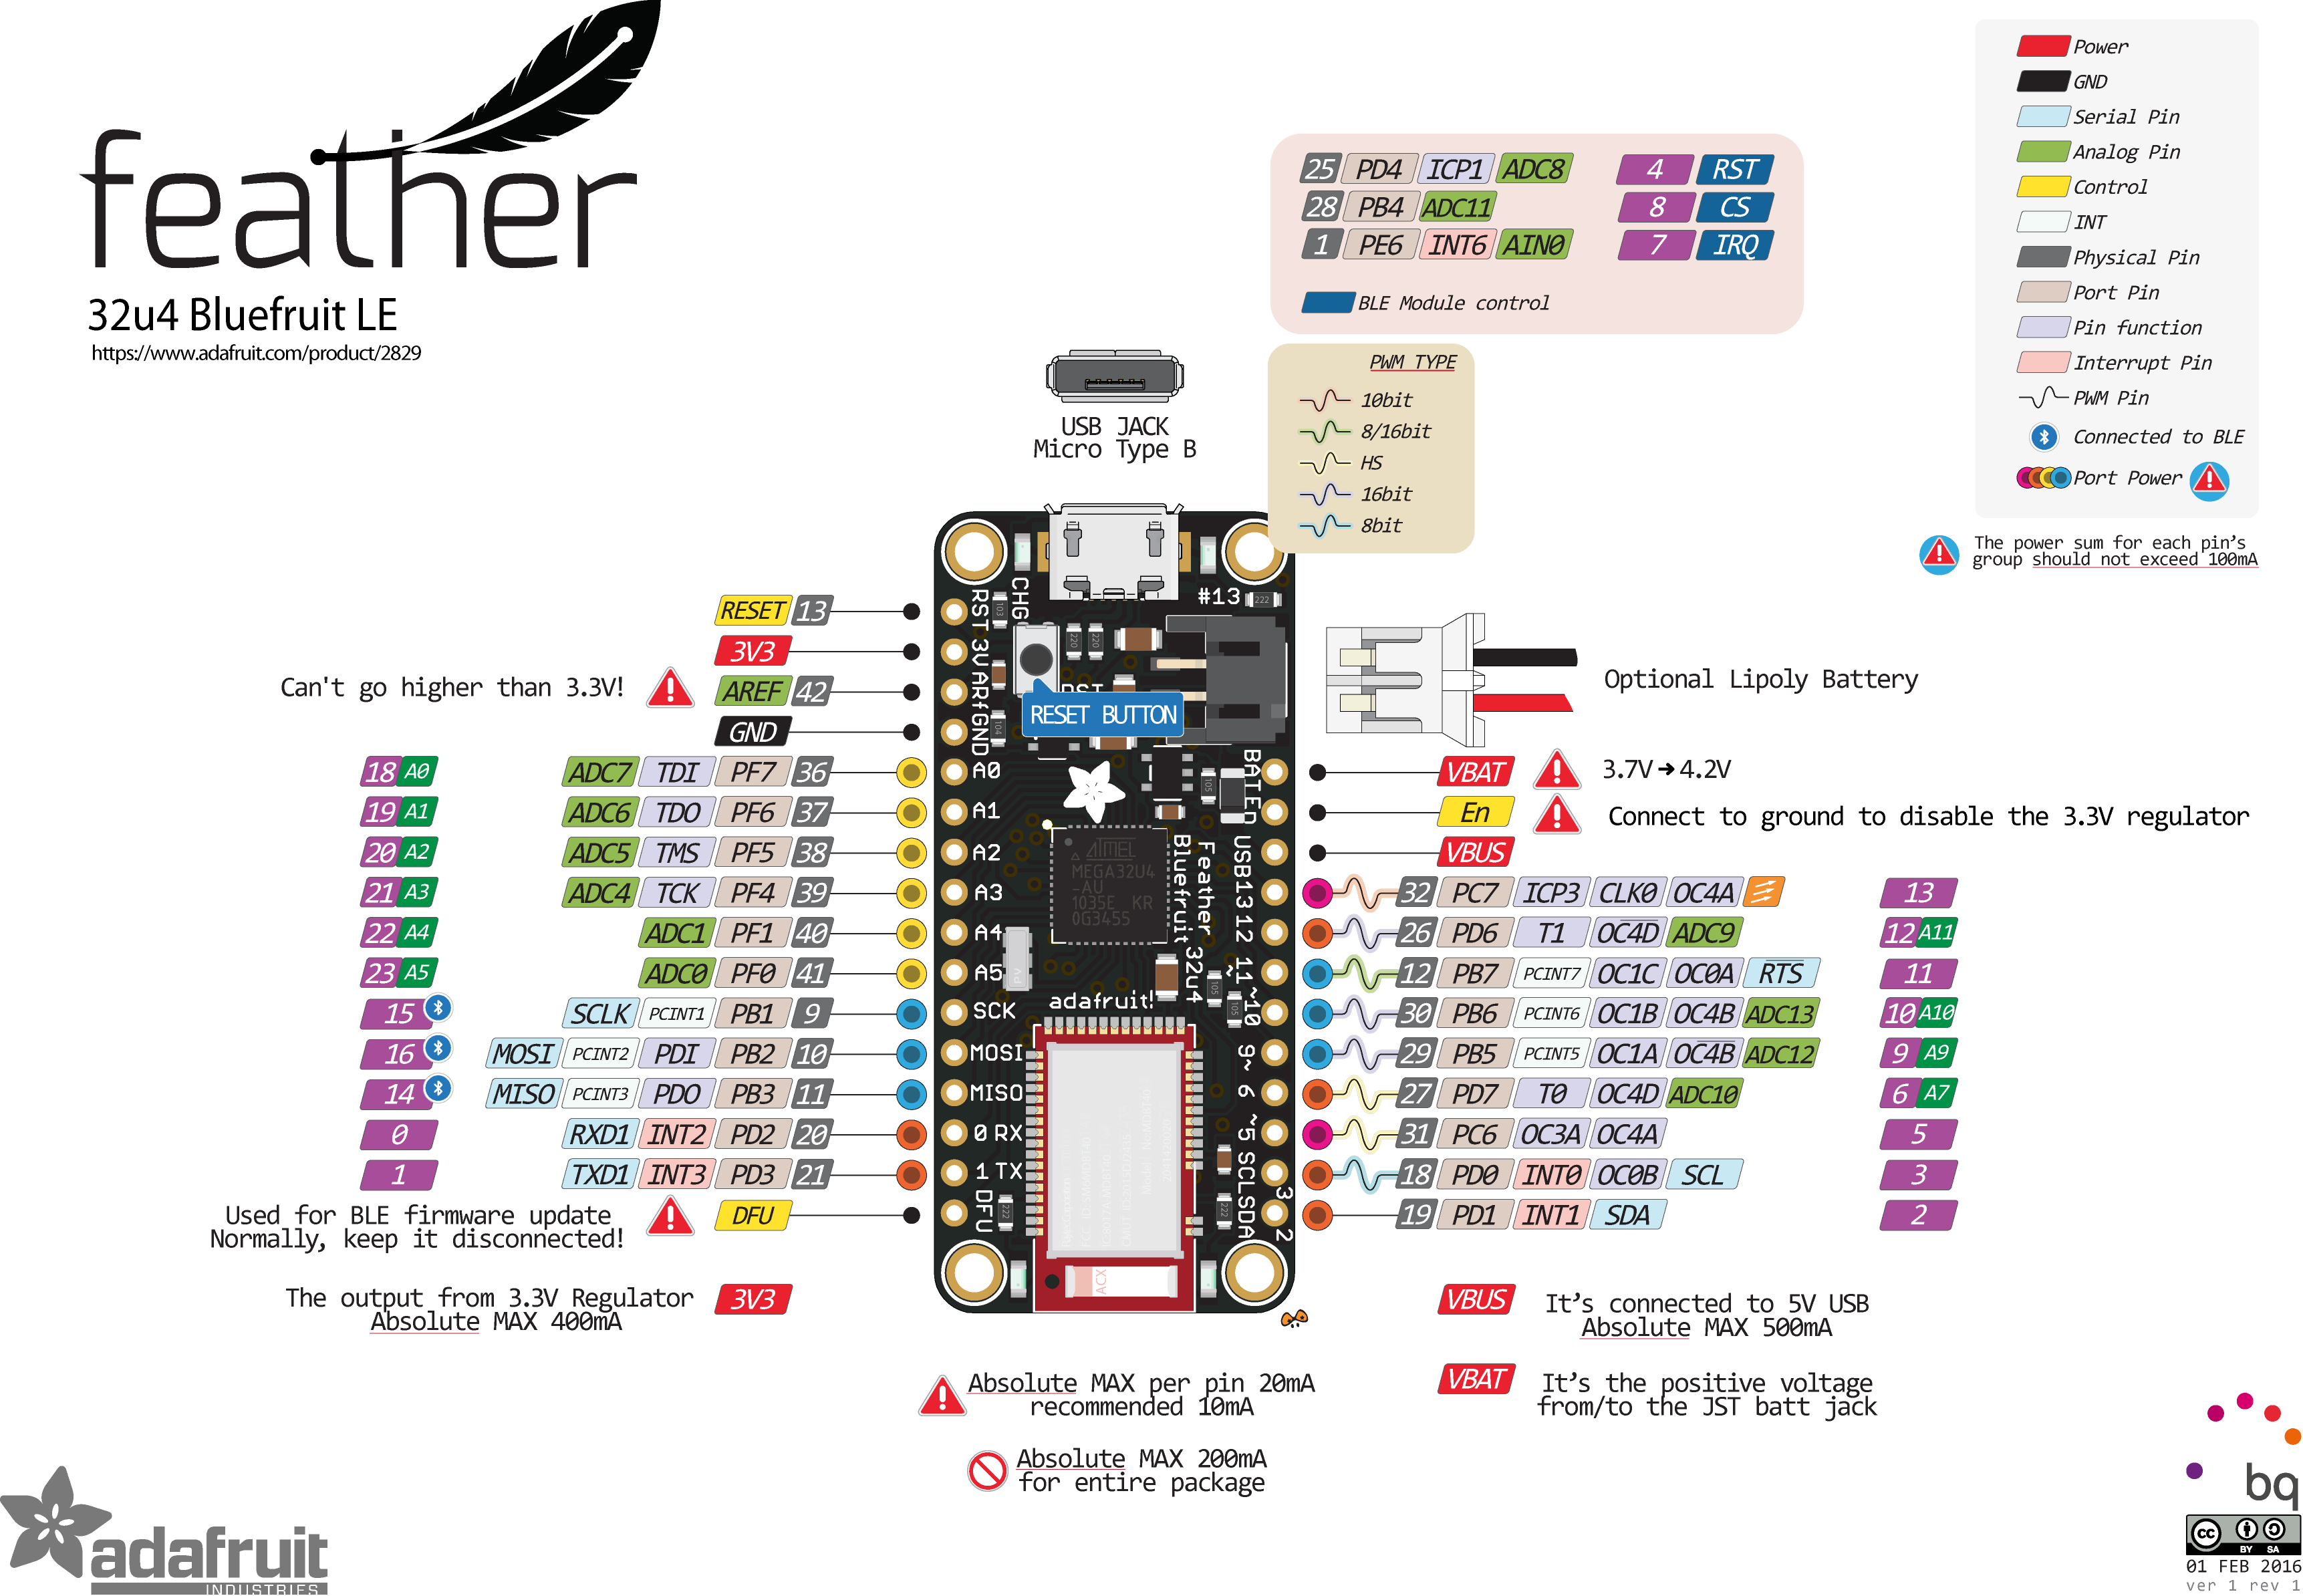 adafruit_products_2889_pinout_v1_0.png